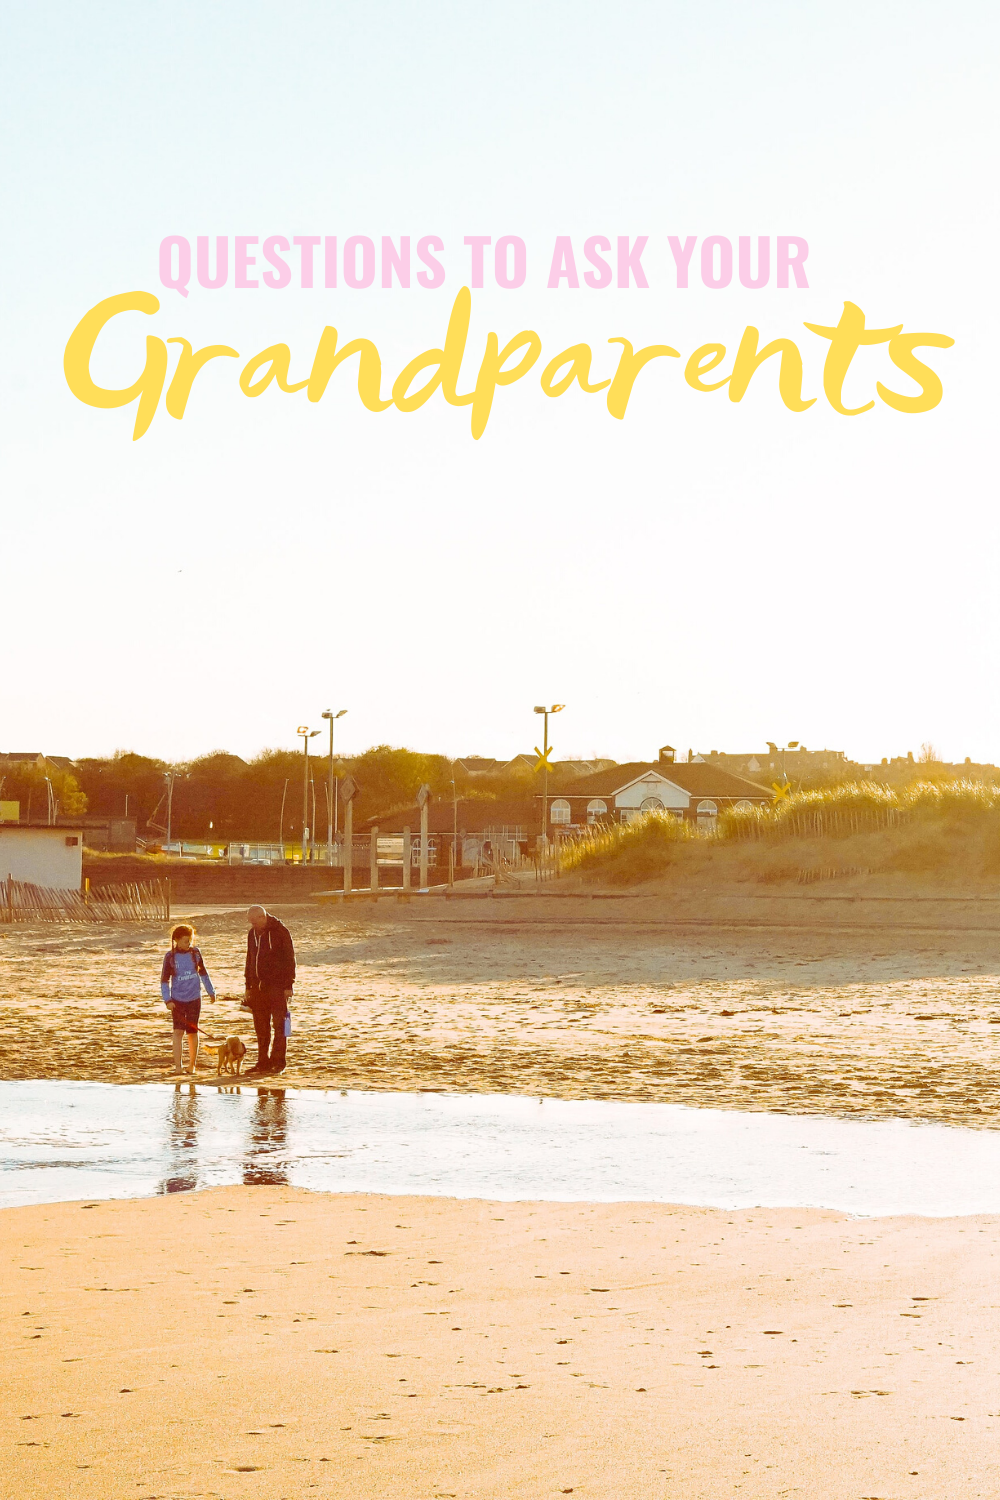 25 Questions To Ask Your Grandparents - Looking to preserve your family legacy? Here are 25 questions to ask your grandparents that make conversation easy.